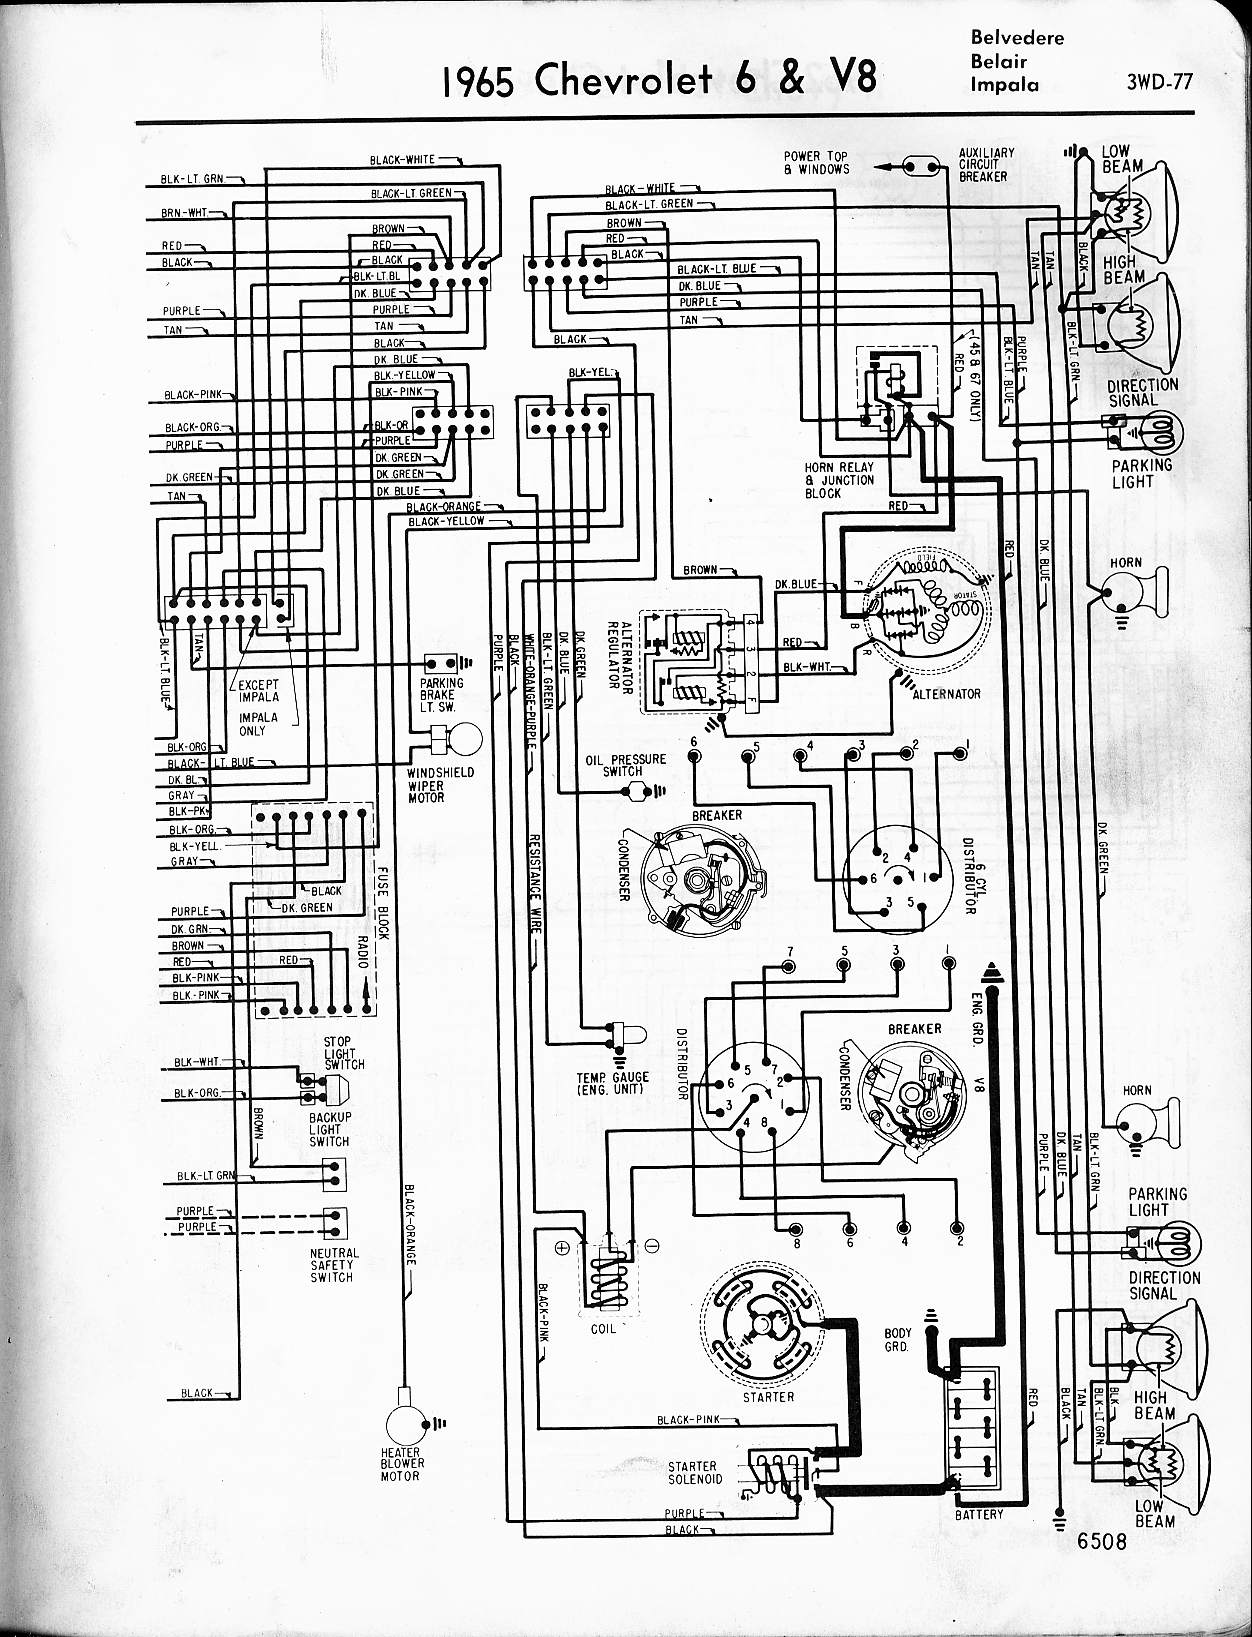 MWireChev65_3WD 077 57 65 chevy wiring diagrams 1962 impala wiring diagram at webbmarketing.co